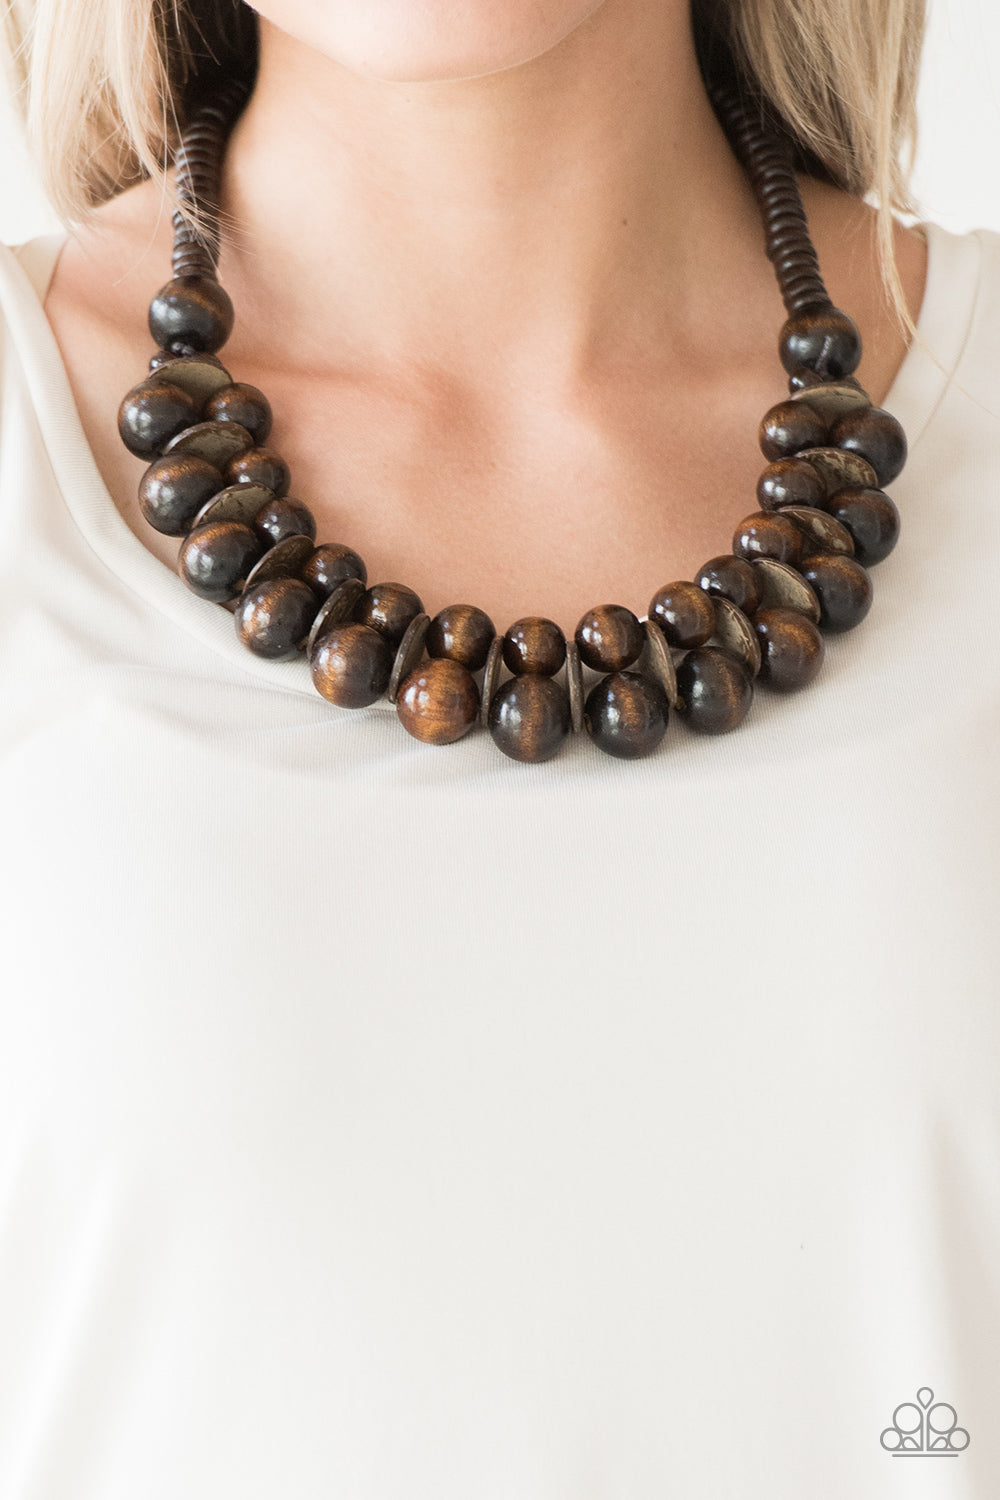 Paparazzi - Caribbean Cover Girl Wooden Bead Necklace